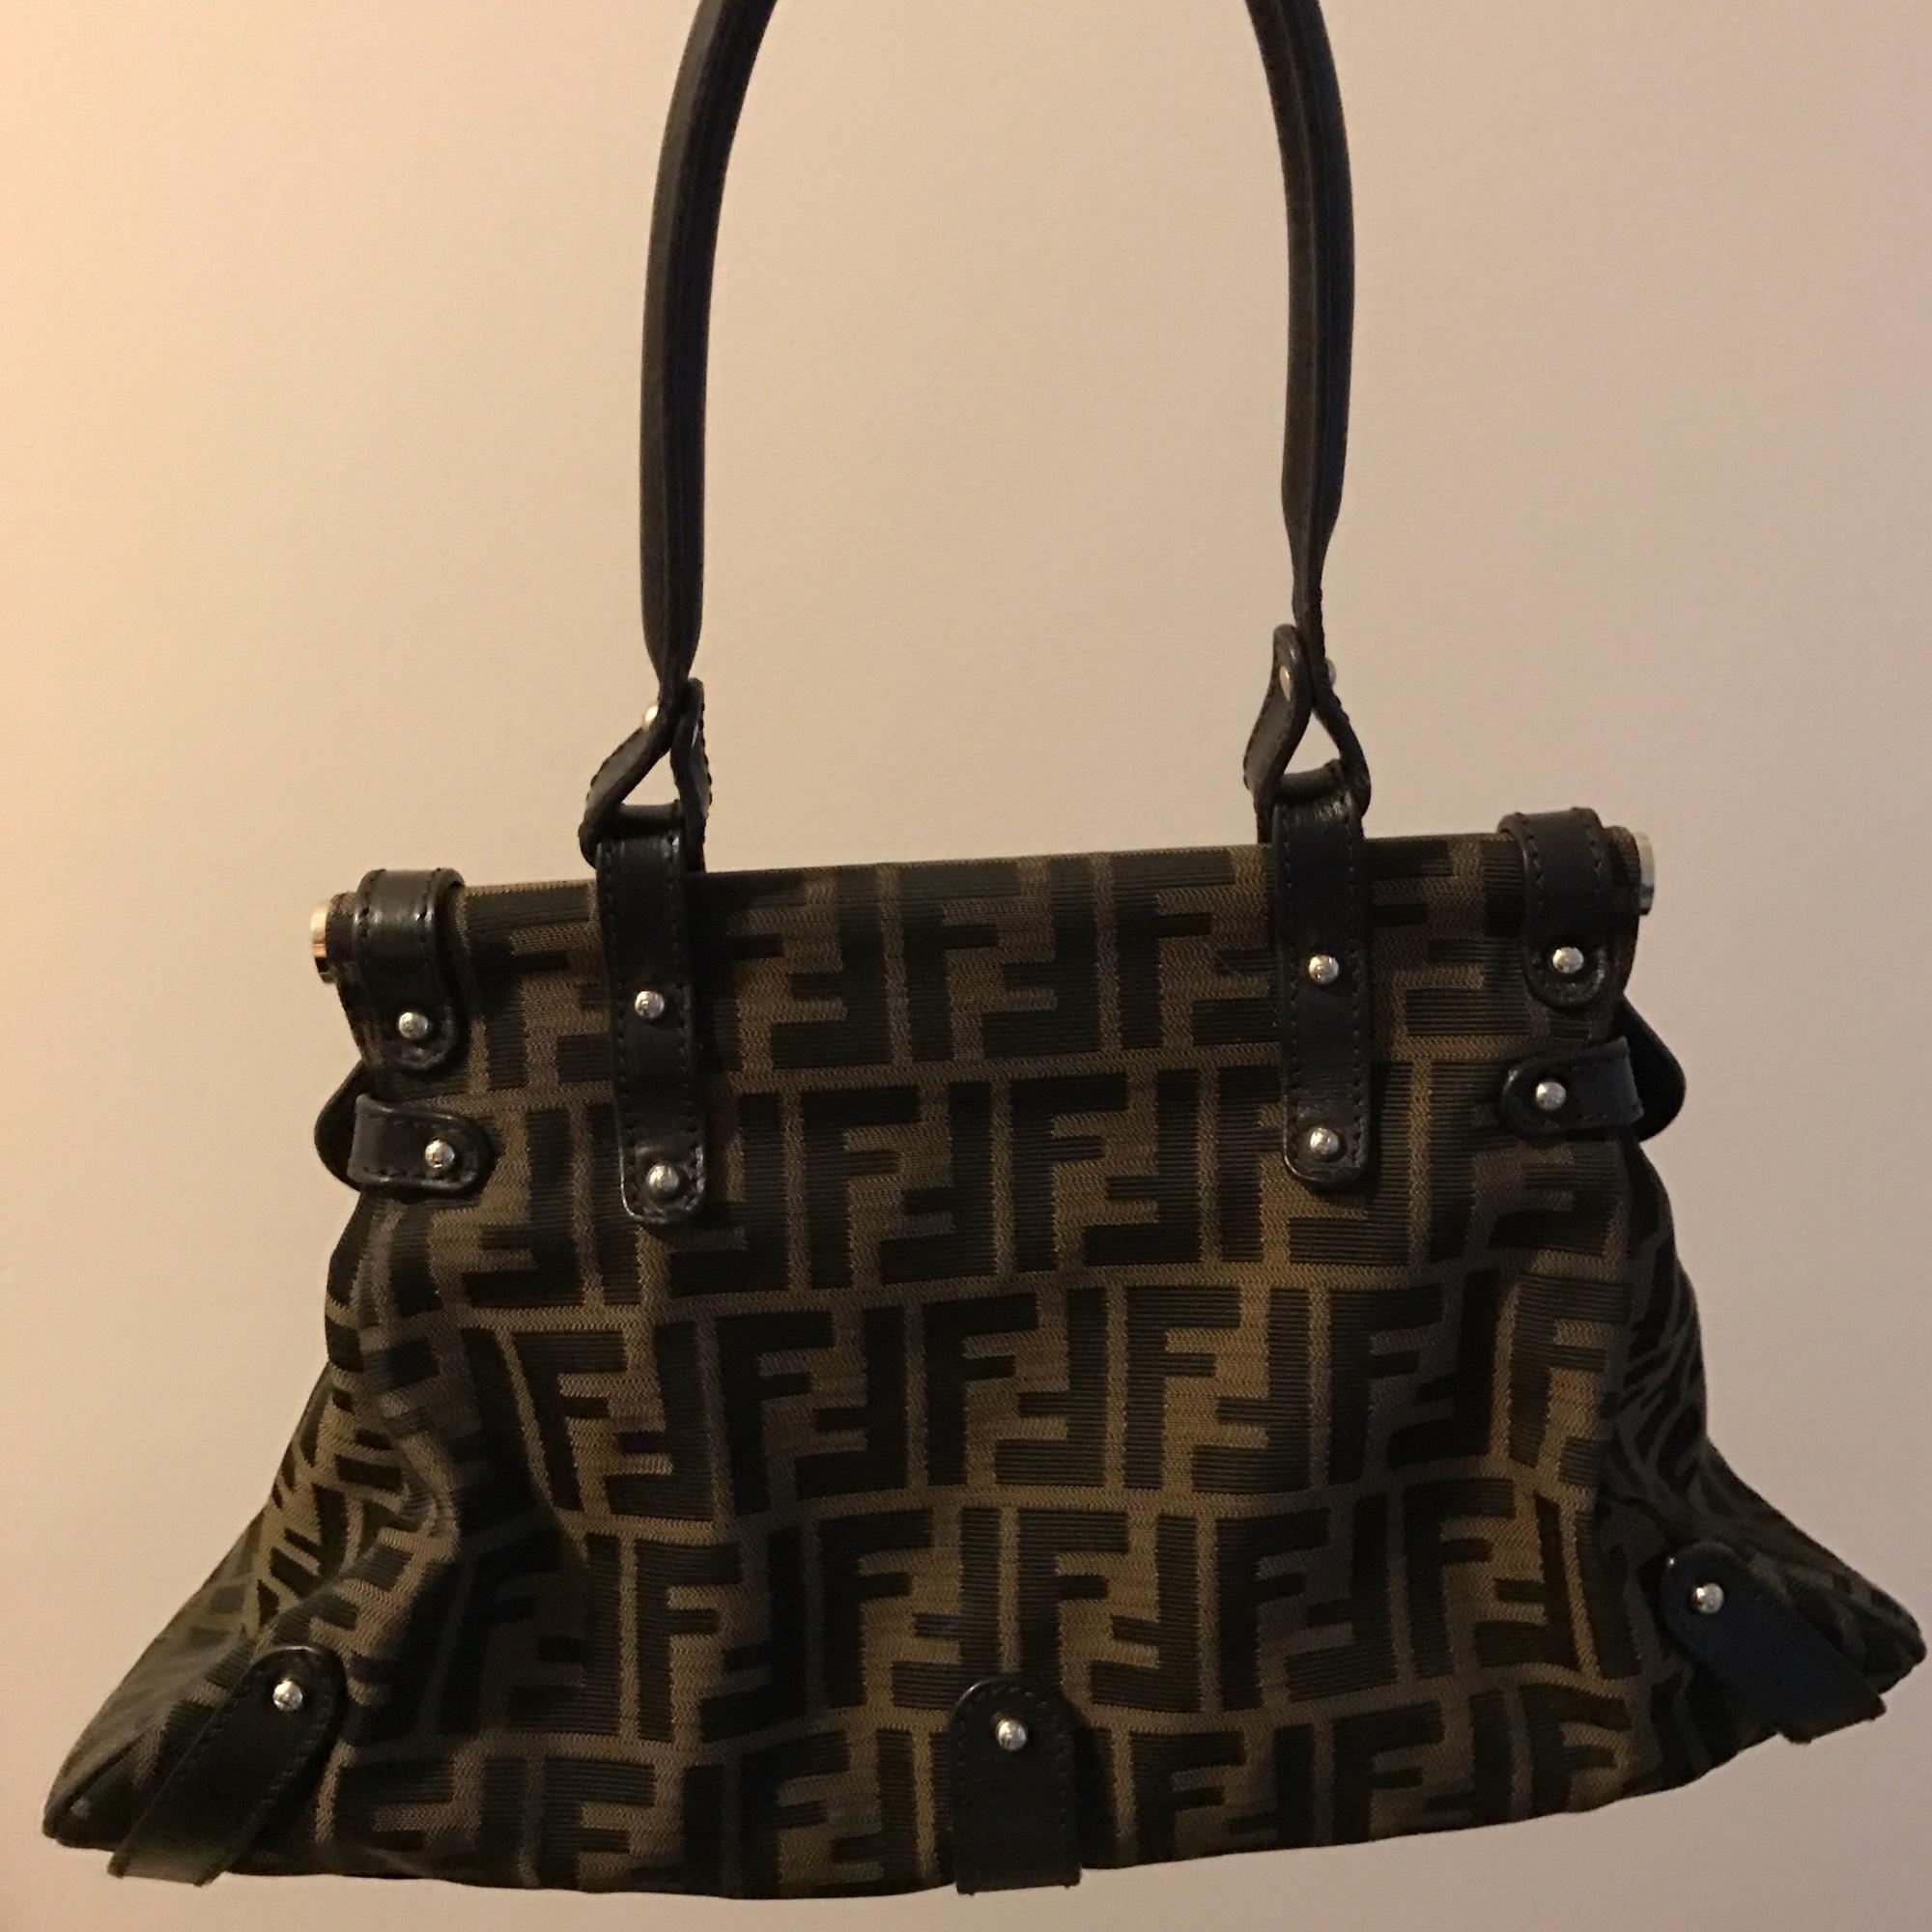 d36ea6d2f5 ... fendi hobo bag. 123 ed4bc ba892 store fendi hobo bag. 123 ed4bc ba892   hot fendi zucca magic bag bags fendi shop authentic new pre owned designer  brands ...